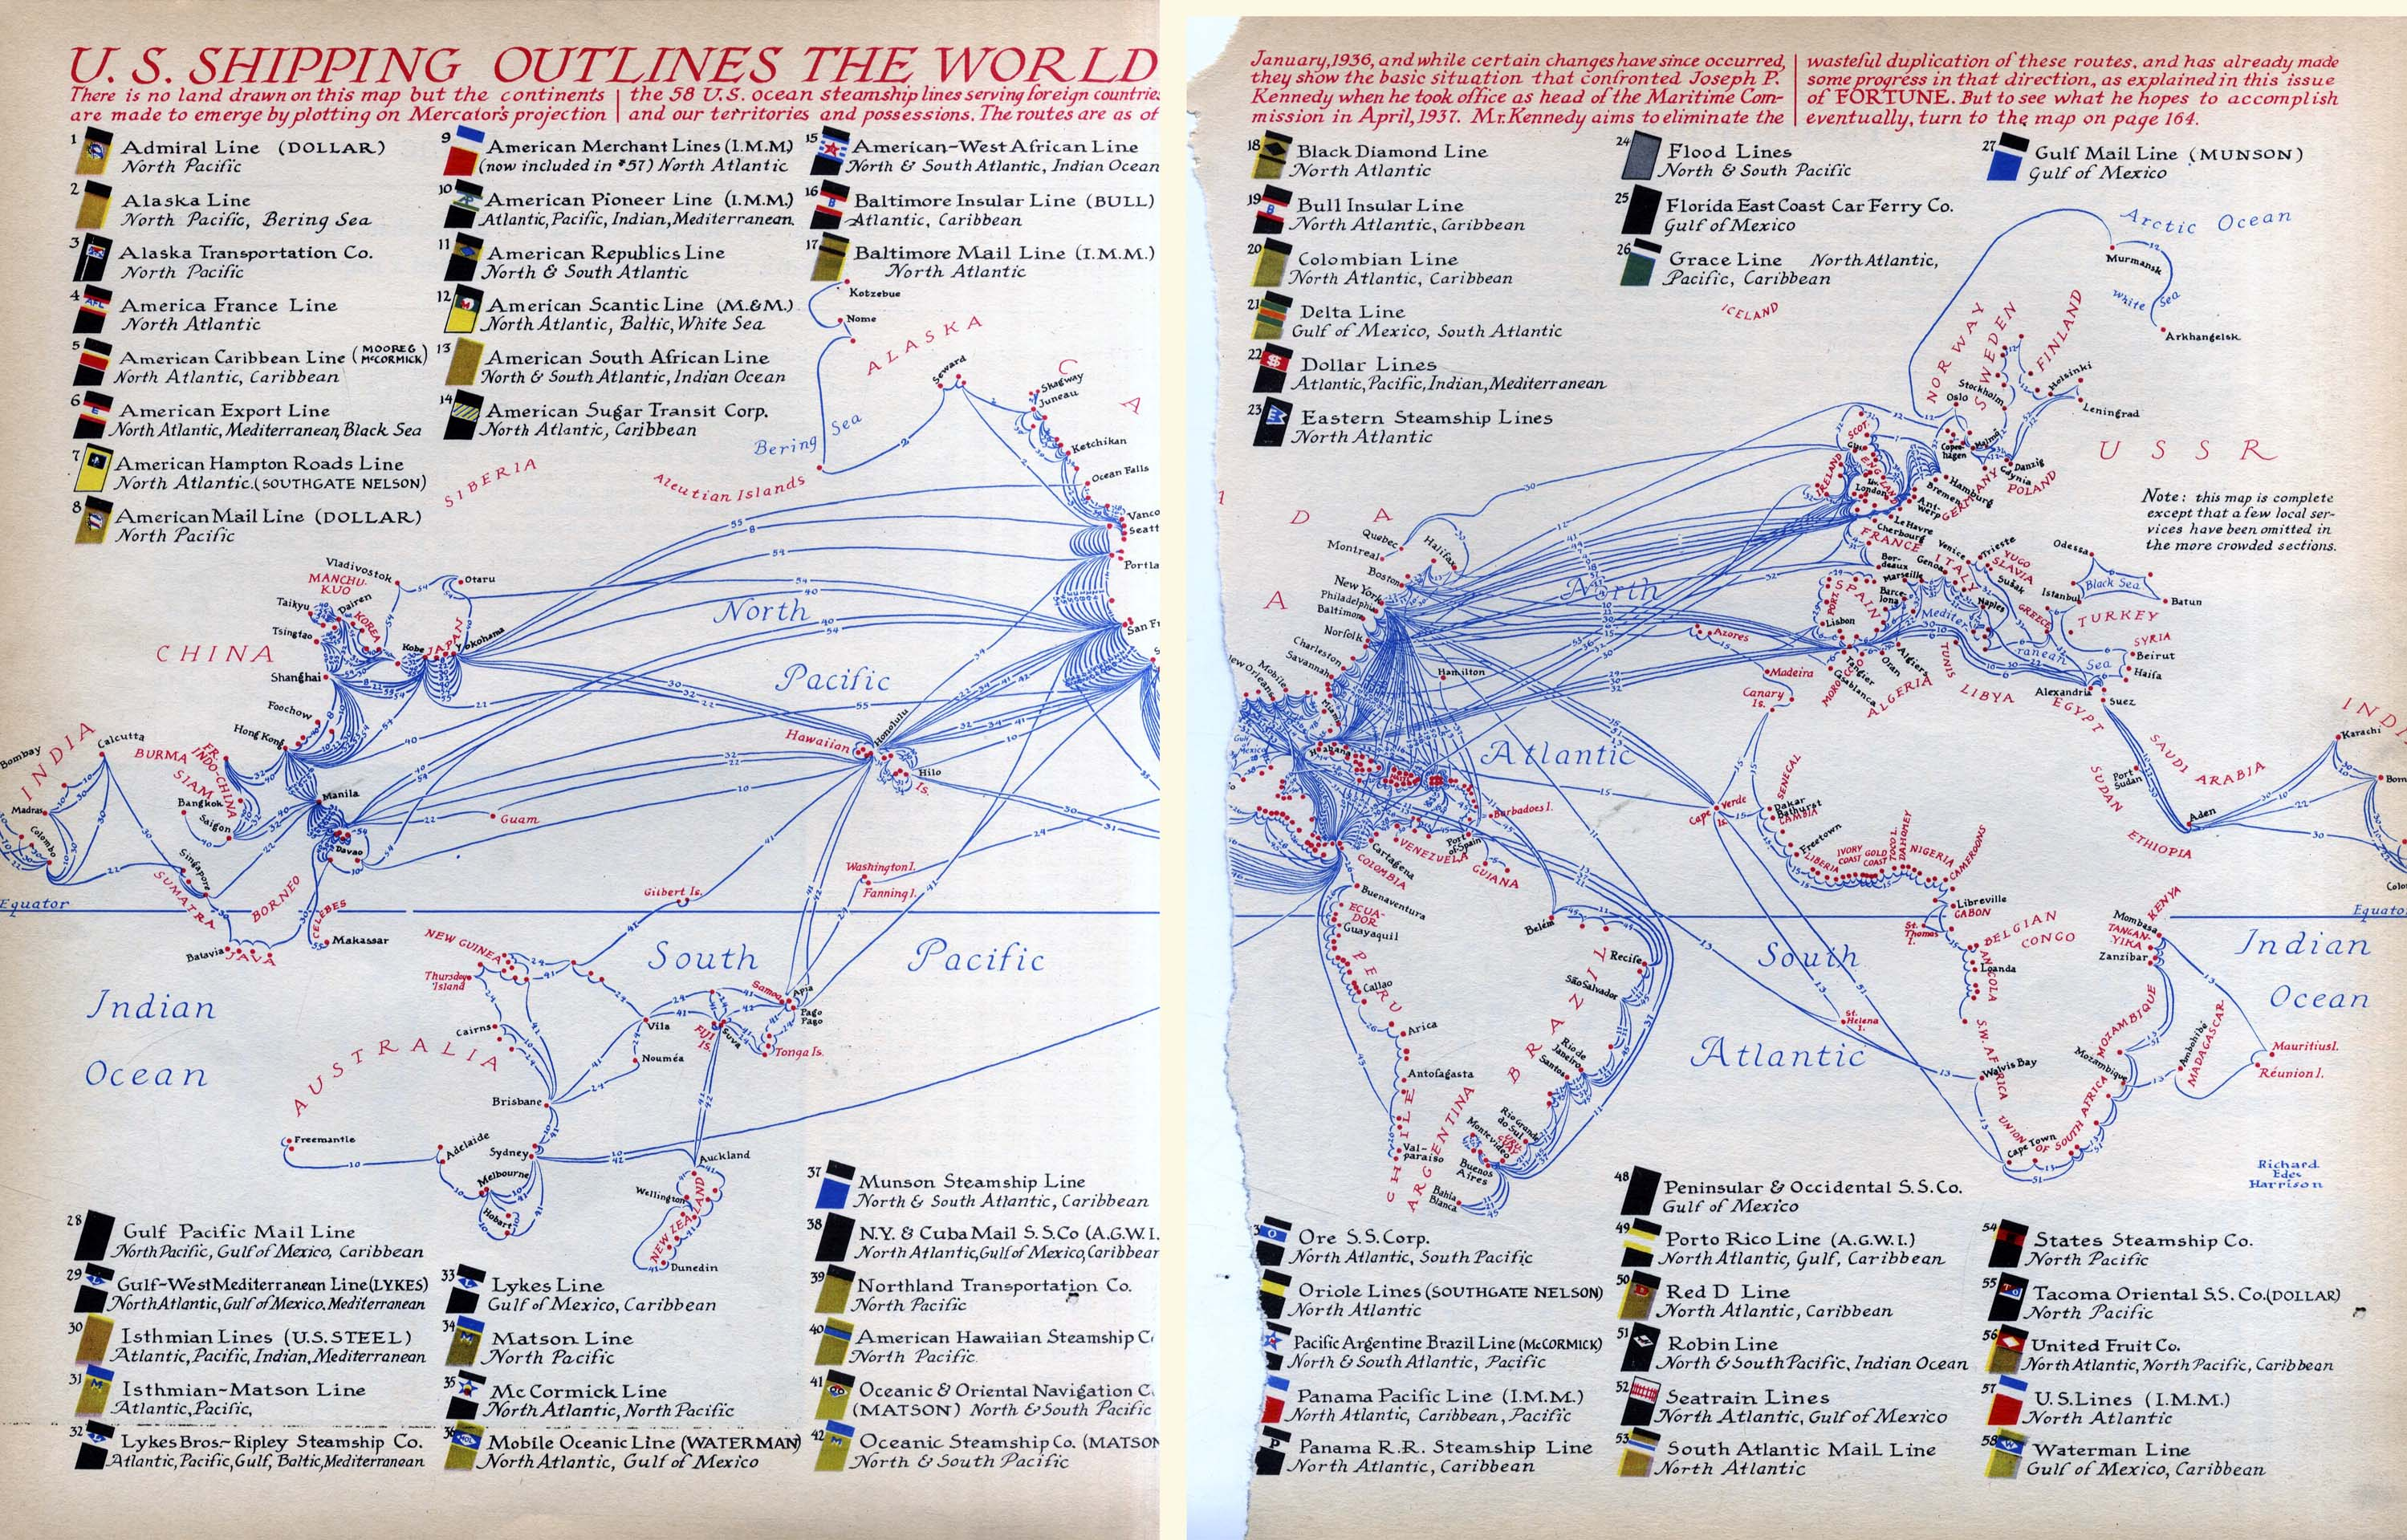 FORTUNE MAGAZINE Informational Images Maps - World map with shipping lines from us